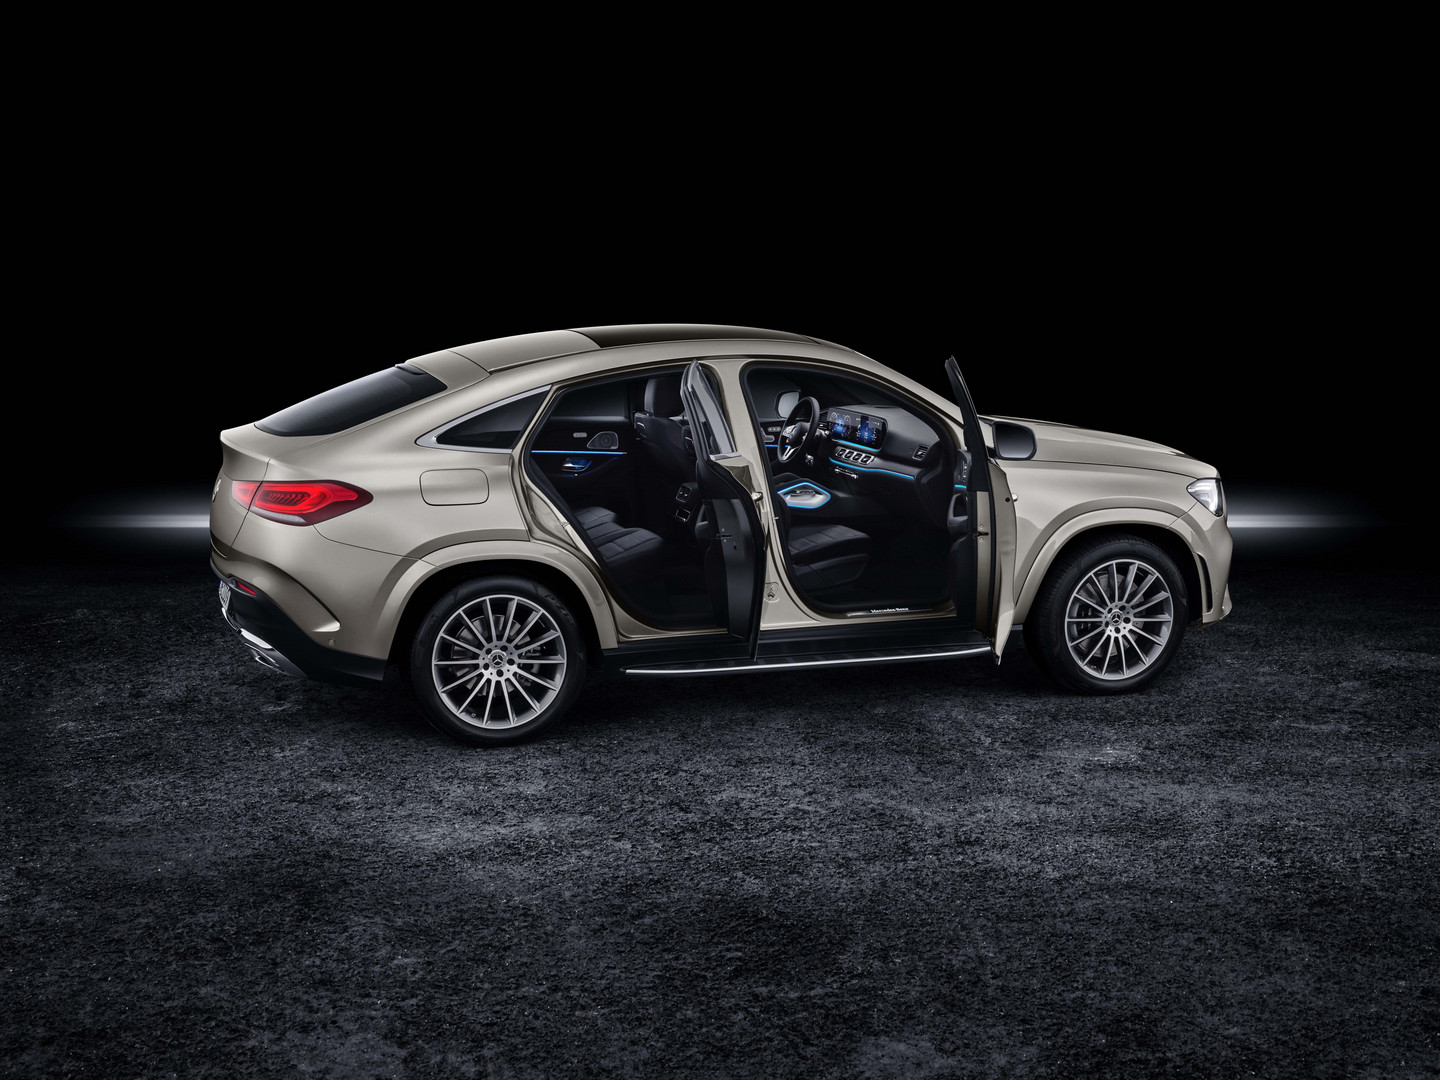 2020 Mercedes-Benz GLE Coupe Doors